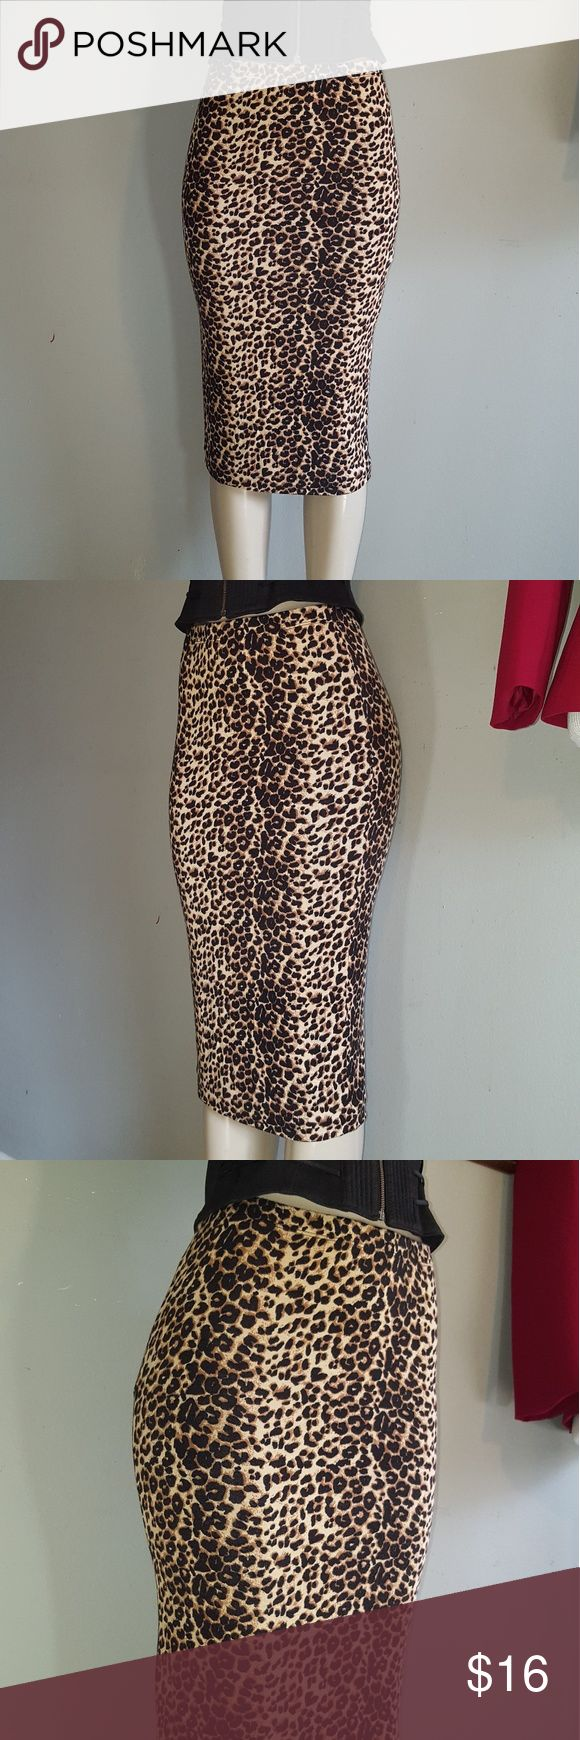 Best 25 Leopard Print Skirt Ideas On Pinterest Jeans